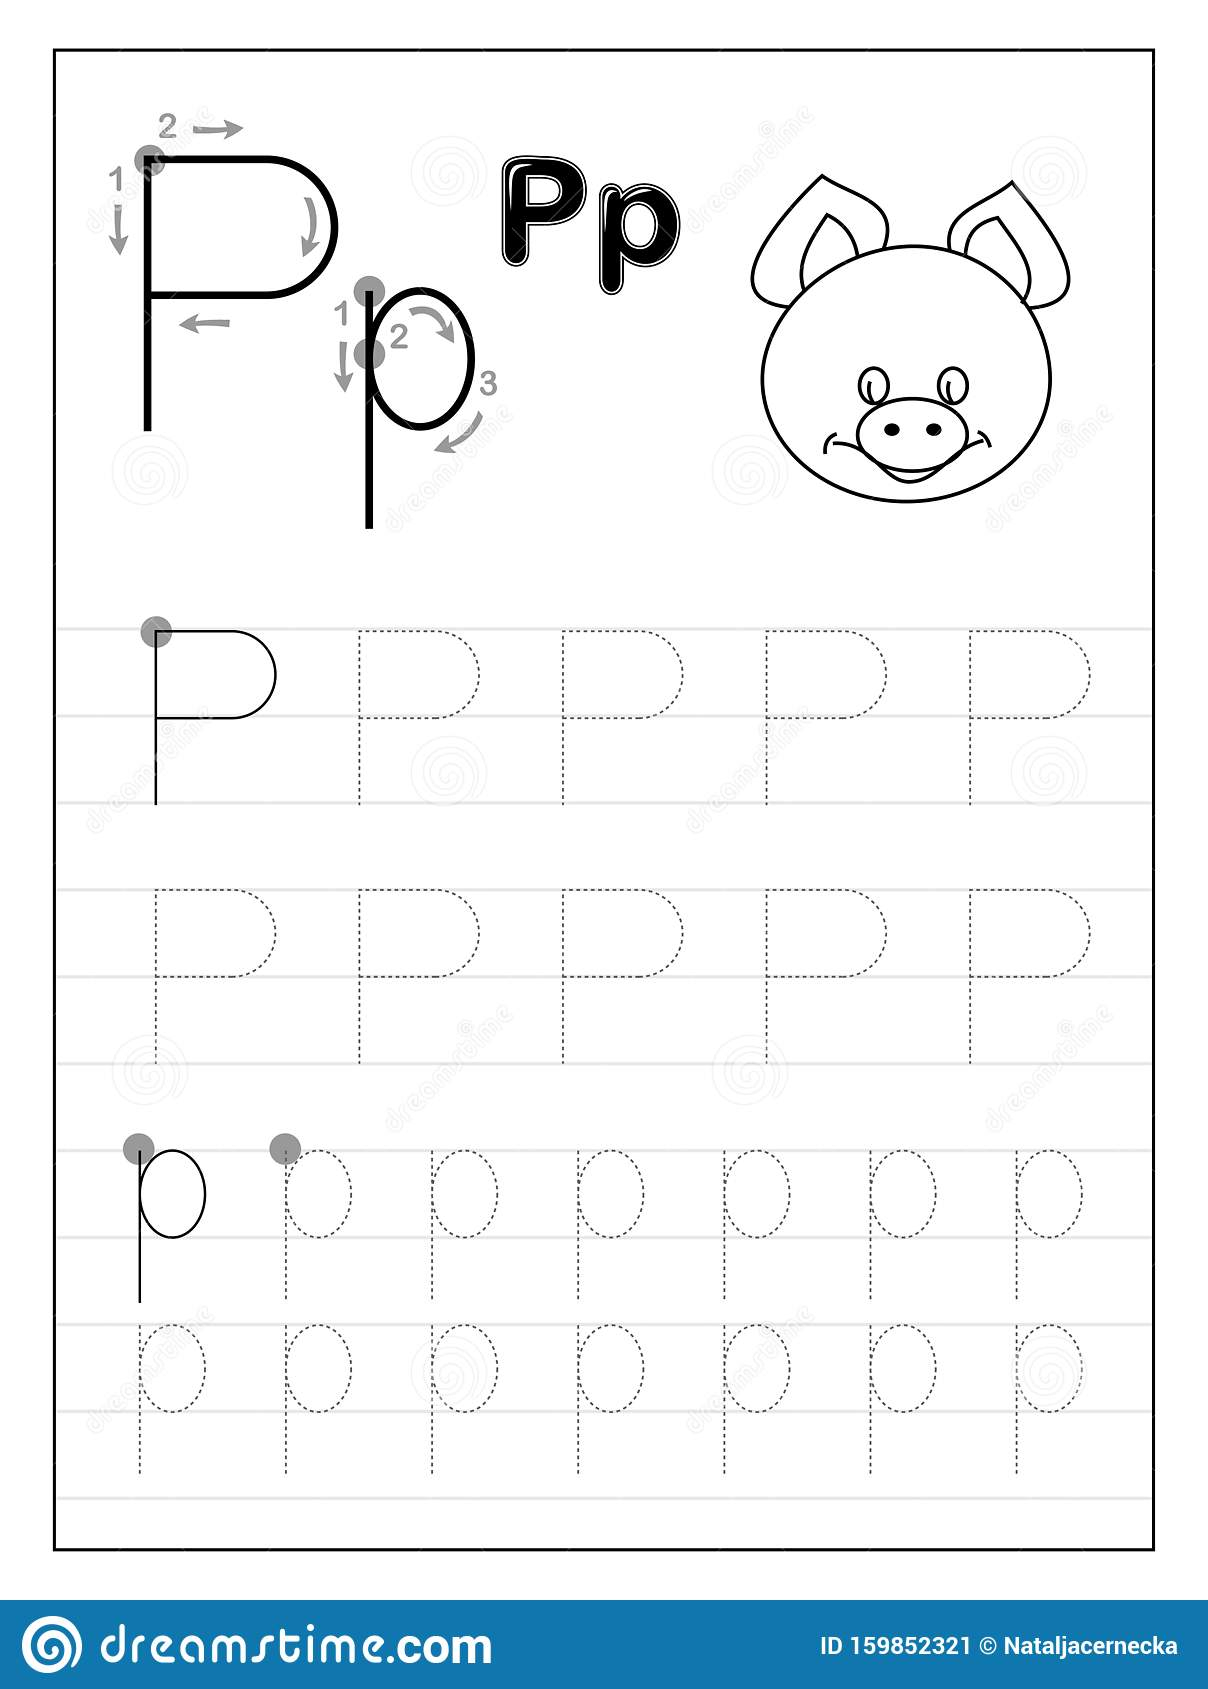 Tracing Alphabet Letter P Black And White Educational Pages intended for Letter P Tracing Worksheet